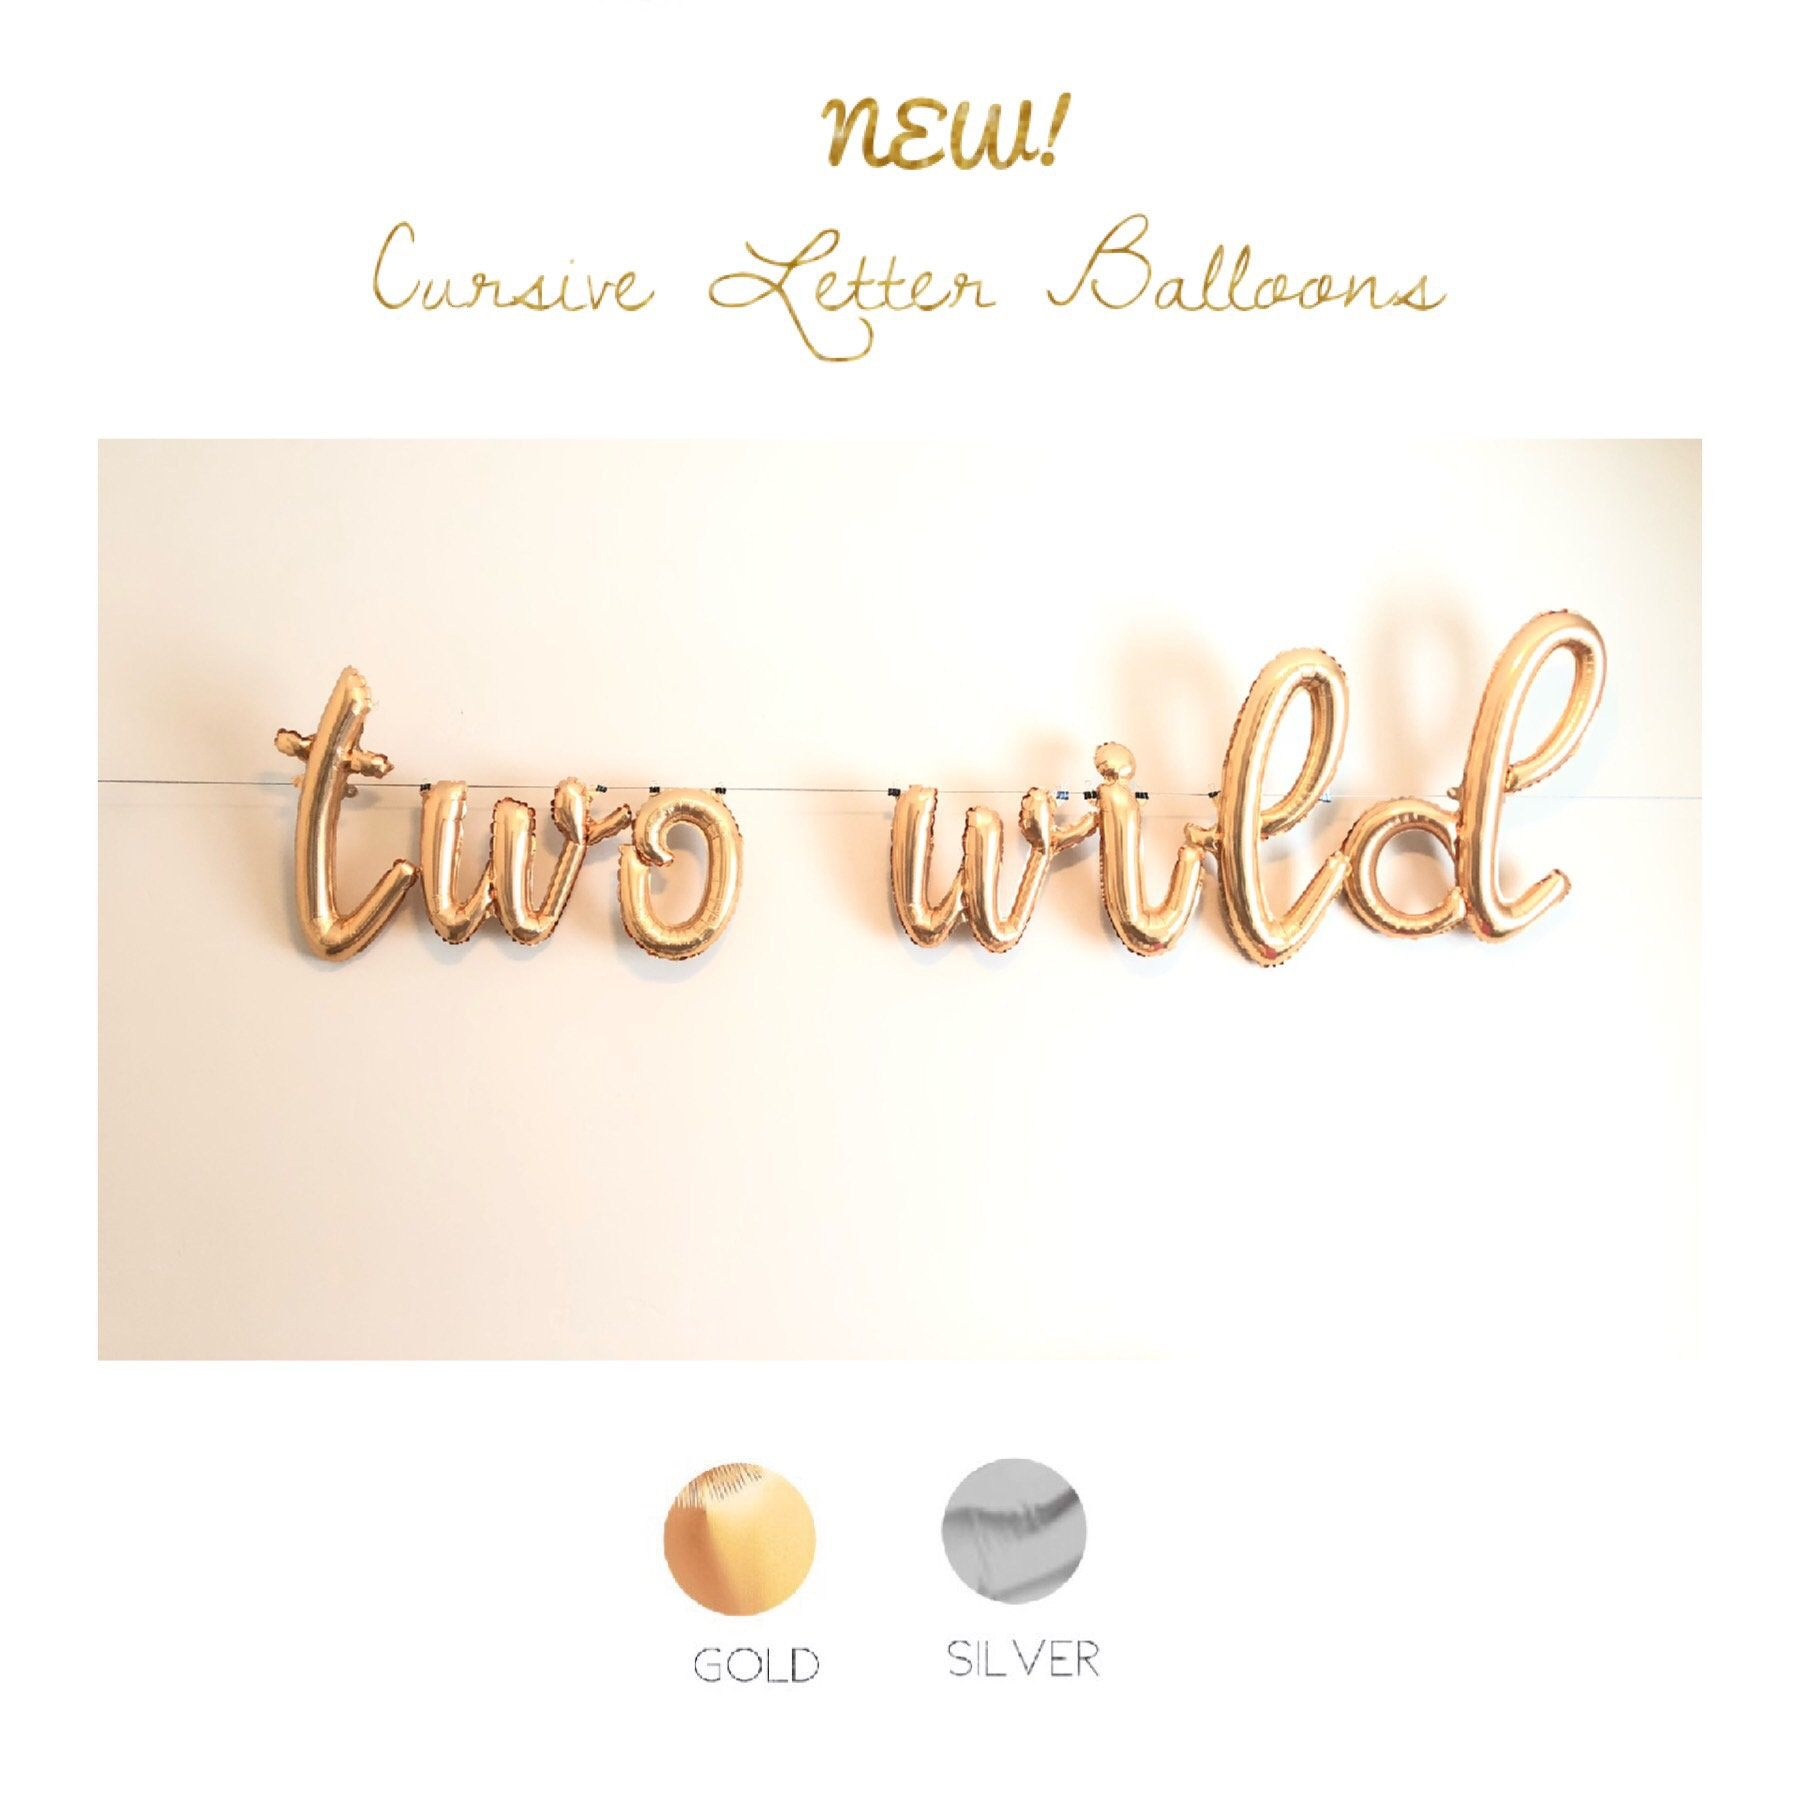 Cursive Two Wild Balloons 14 Foil Letter Balloons Gold Silver